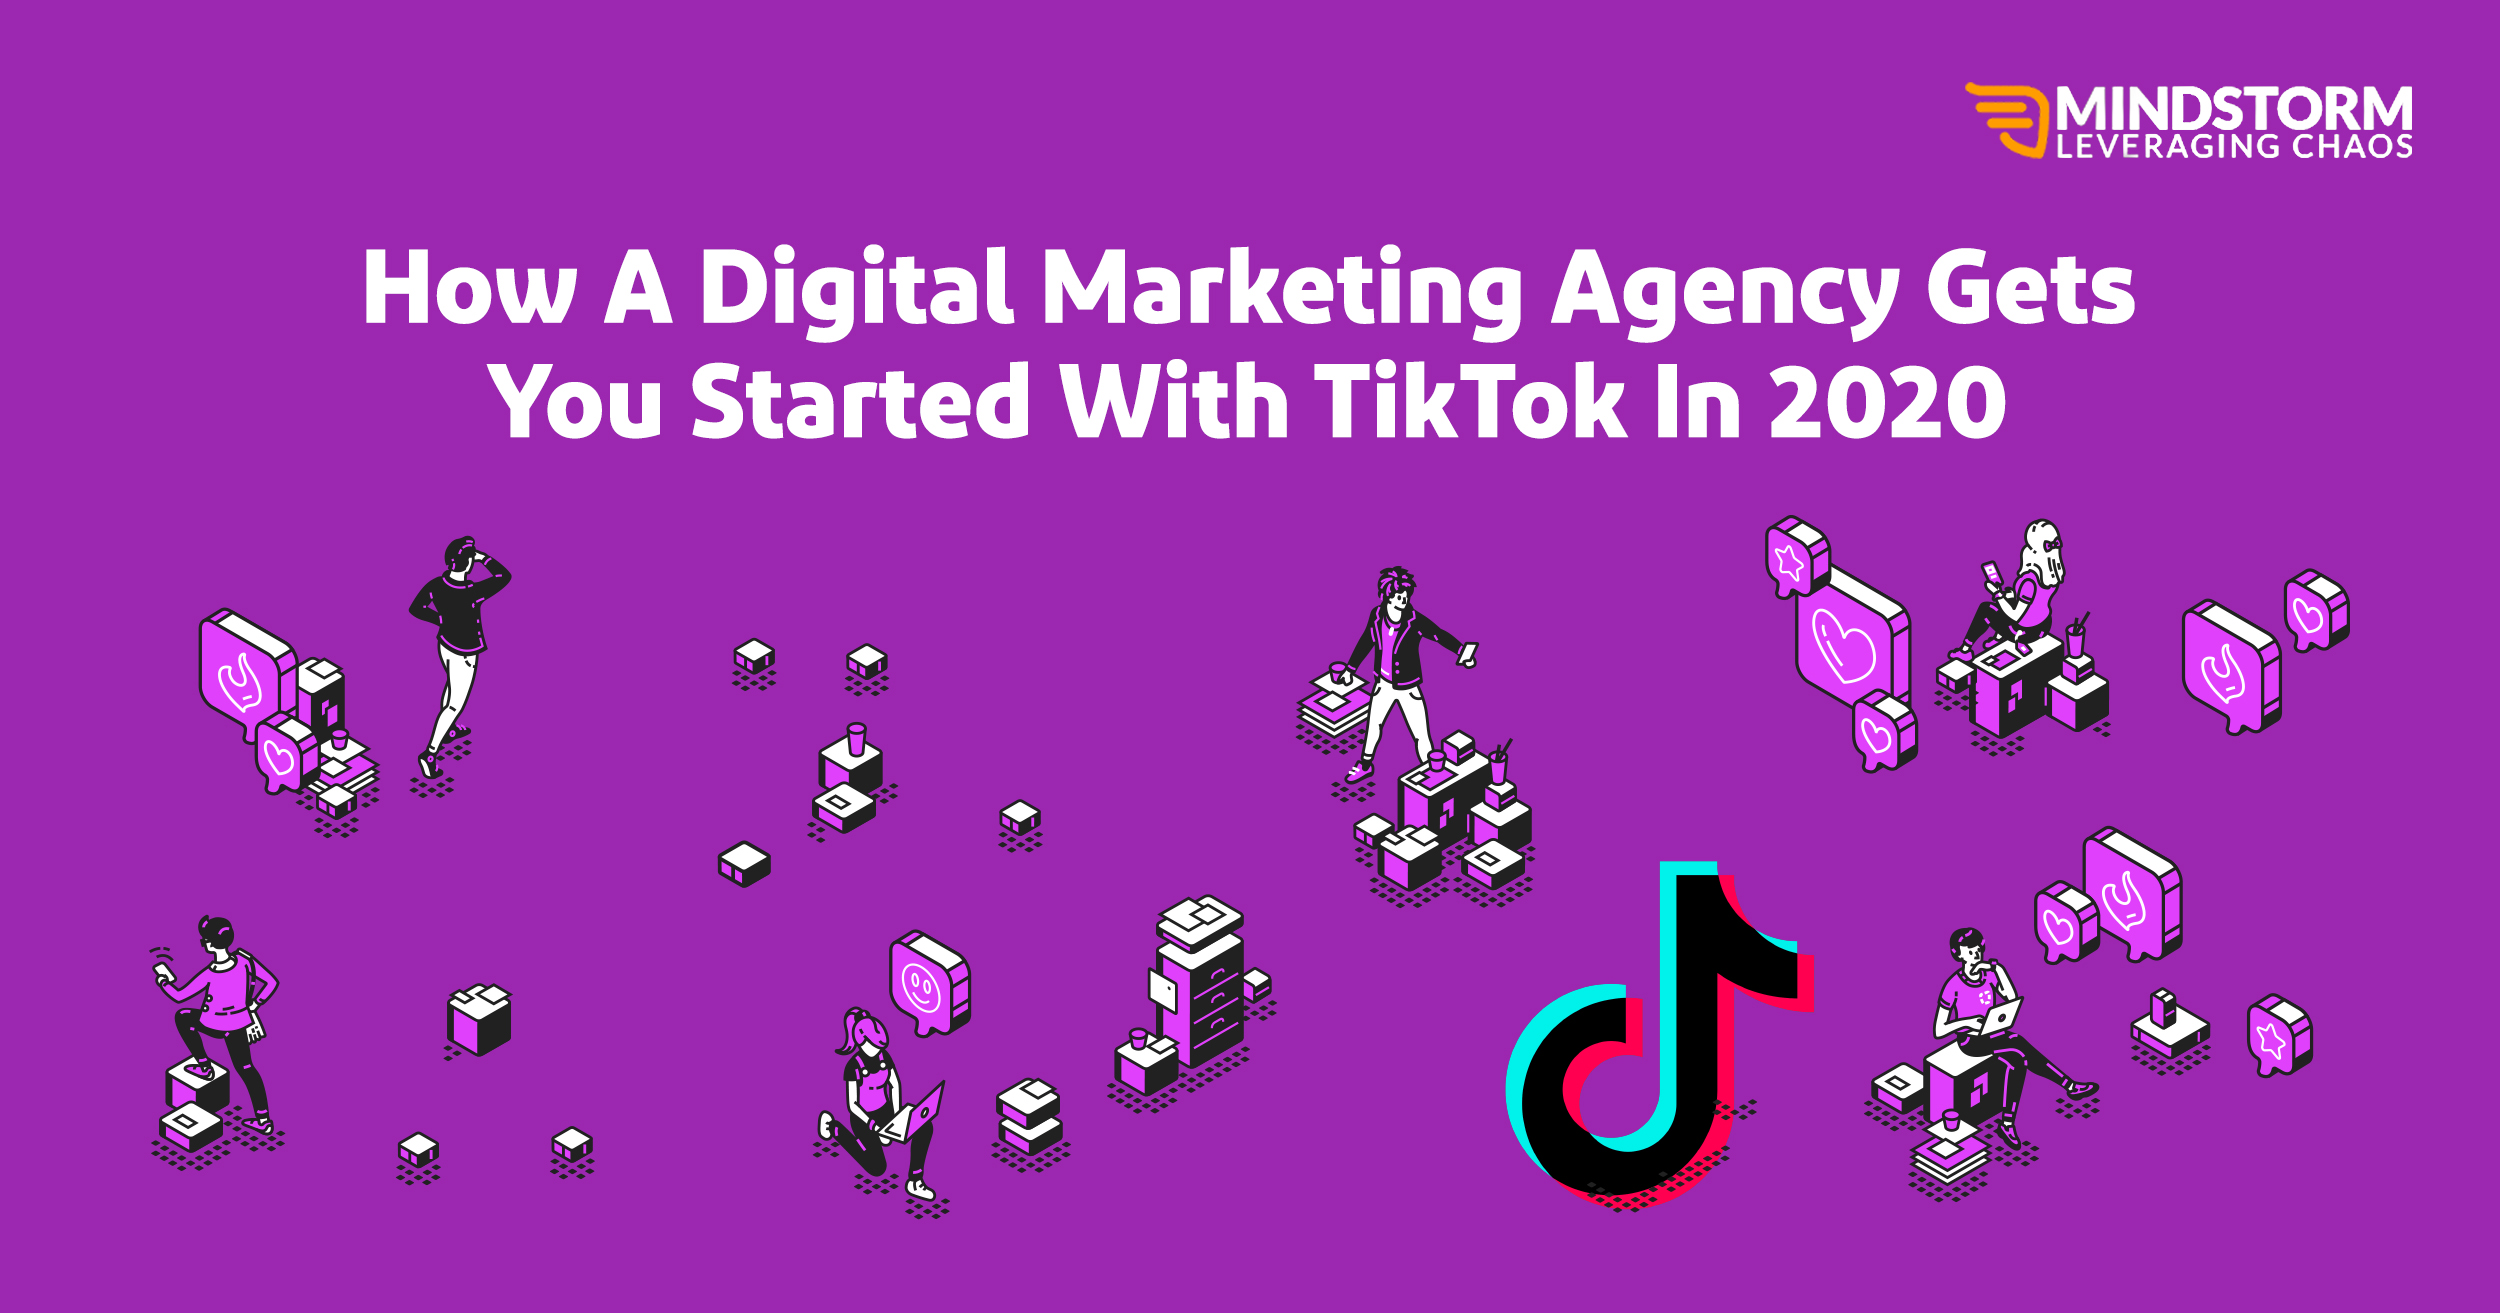 How A Digital Marketing Agency Gets You Started With TikTok In 2020!